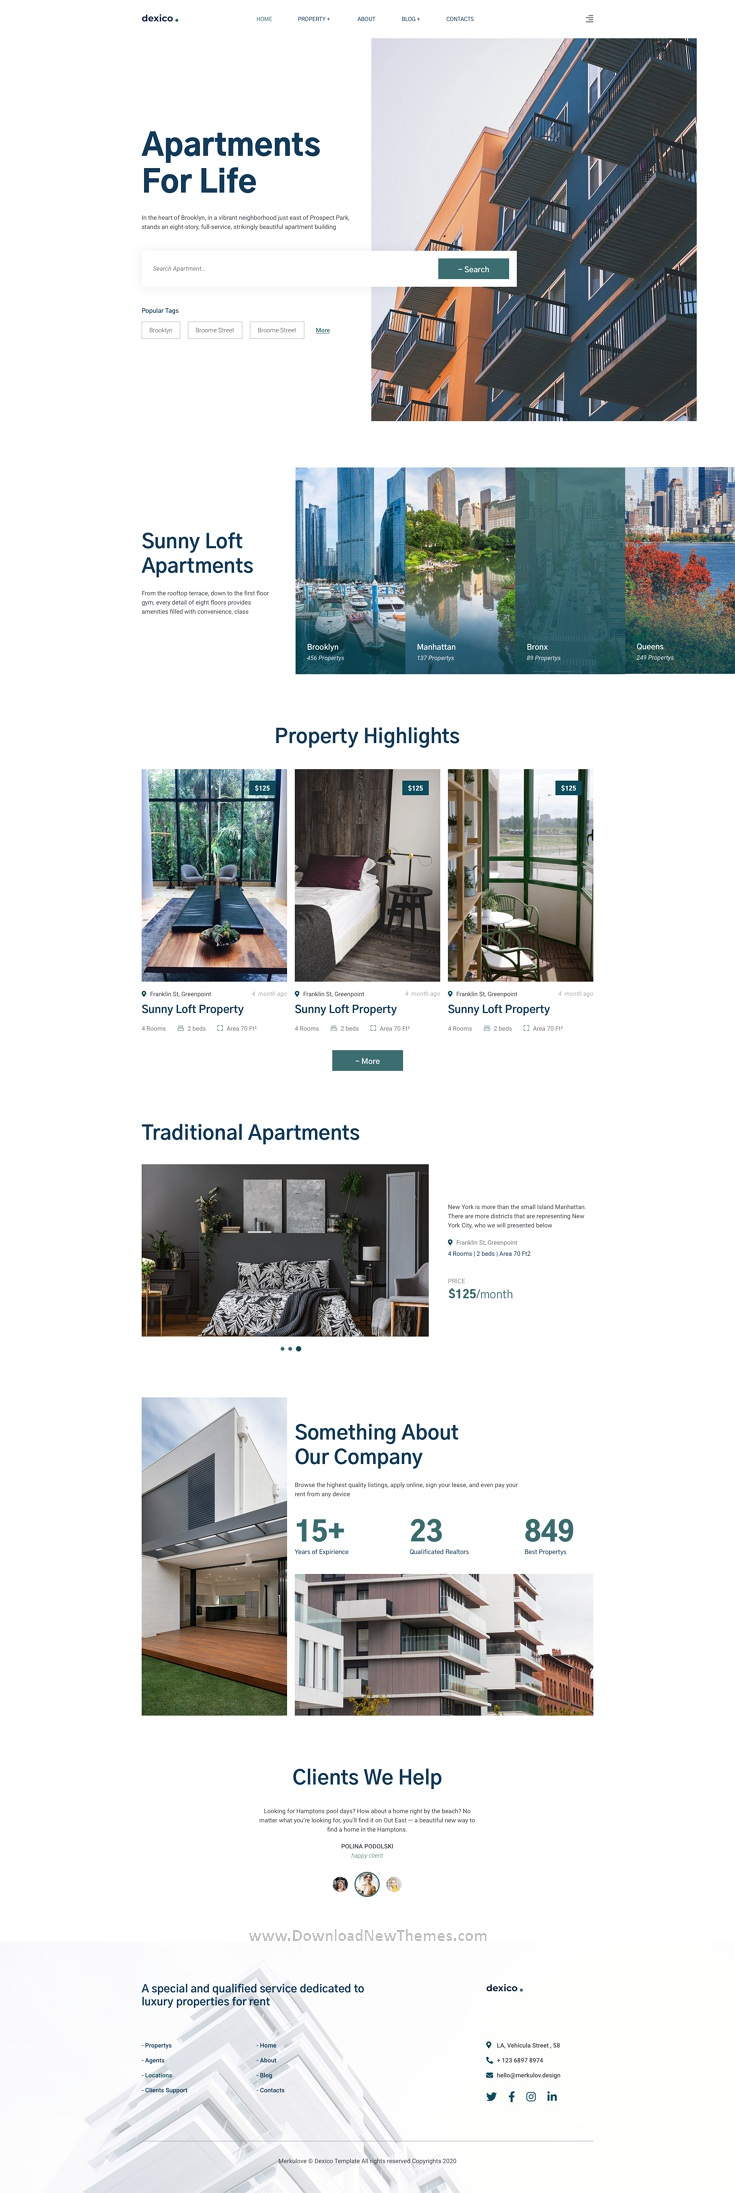 Apartment Rent Template for Photoshop